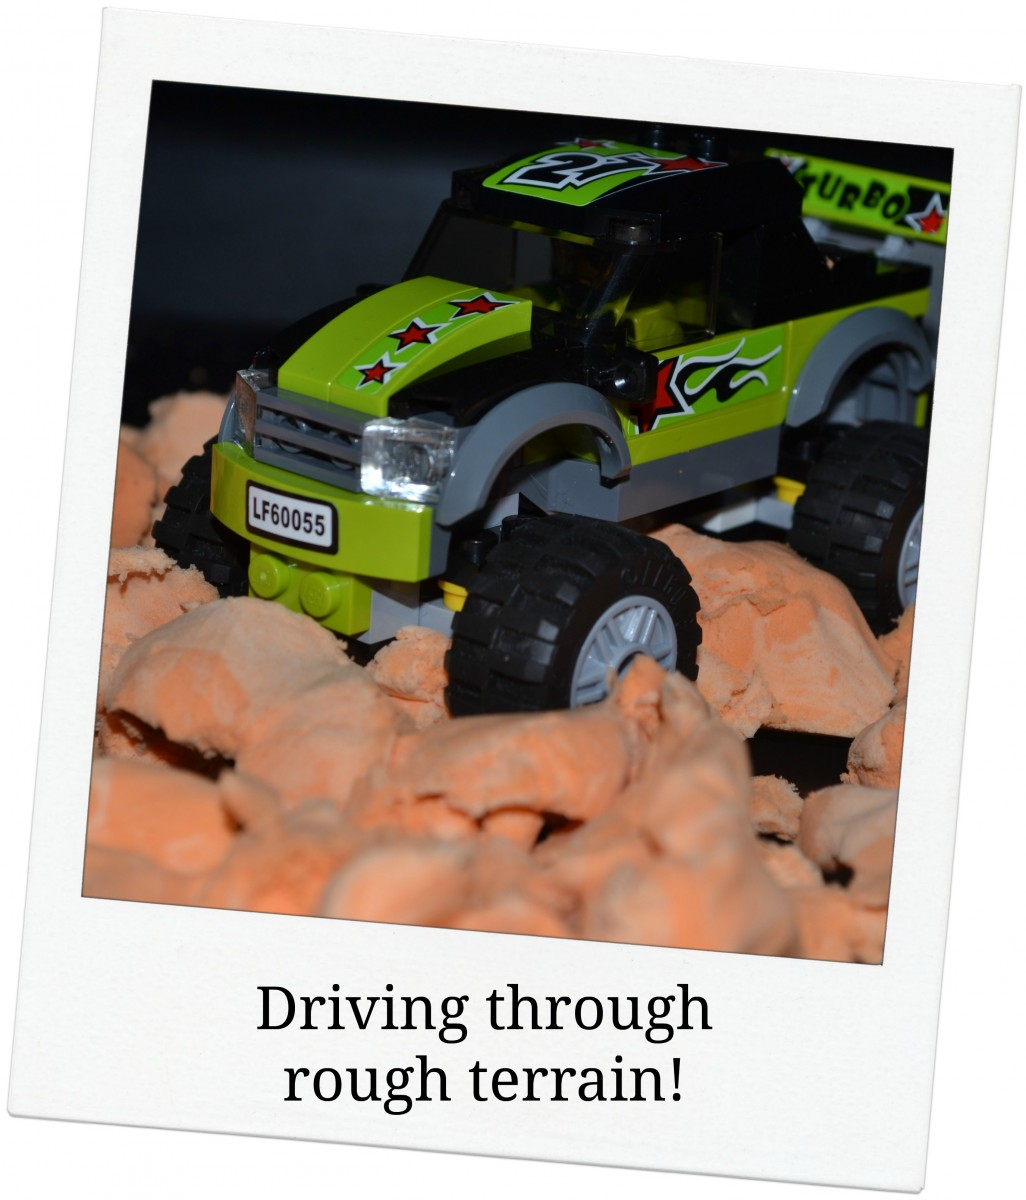 Lego Monster Truck driving through Moonsand